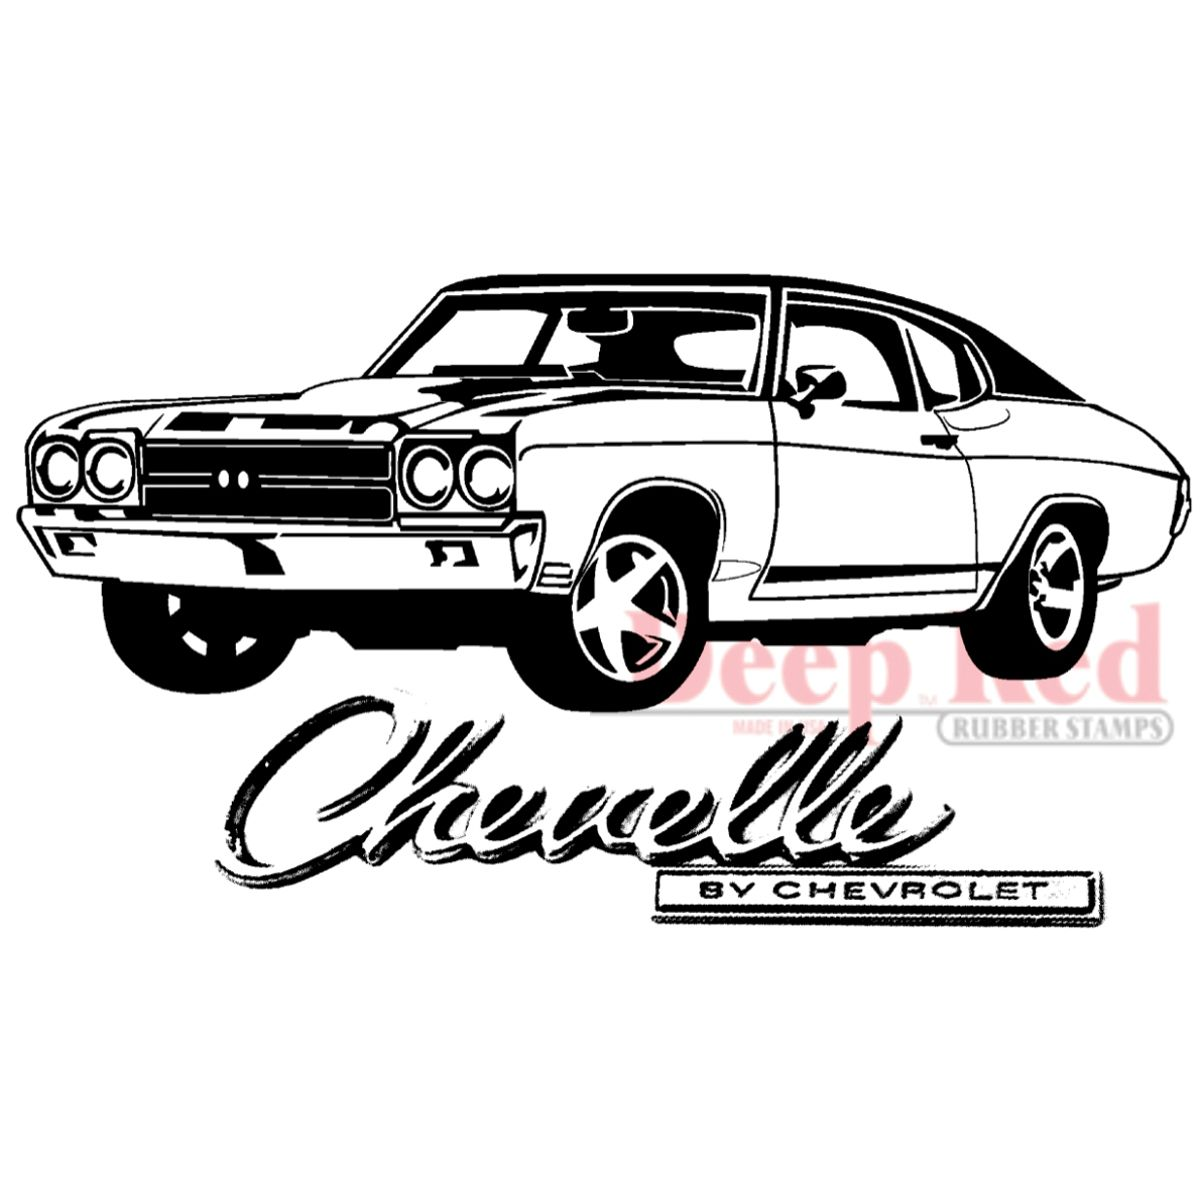 Tribal Racing Tattoo 762269 also American Racing Symbols likewise Car sketch as well Easy Old Car Drawings additionally 514395588660367227. on muscle car ilustration